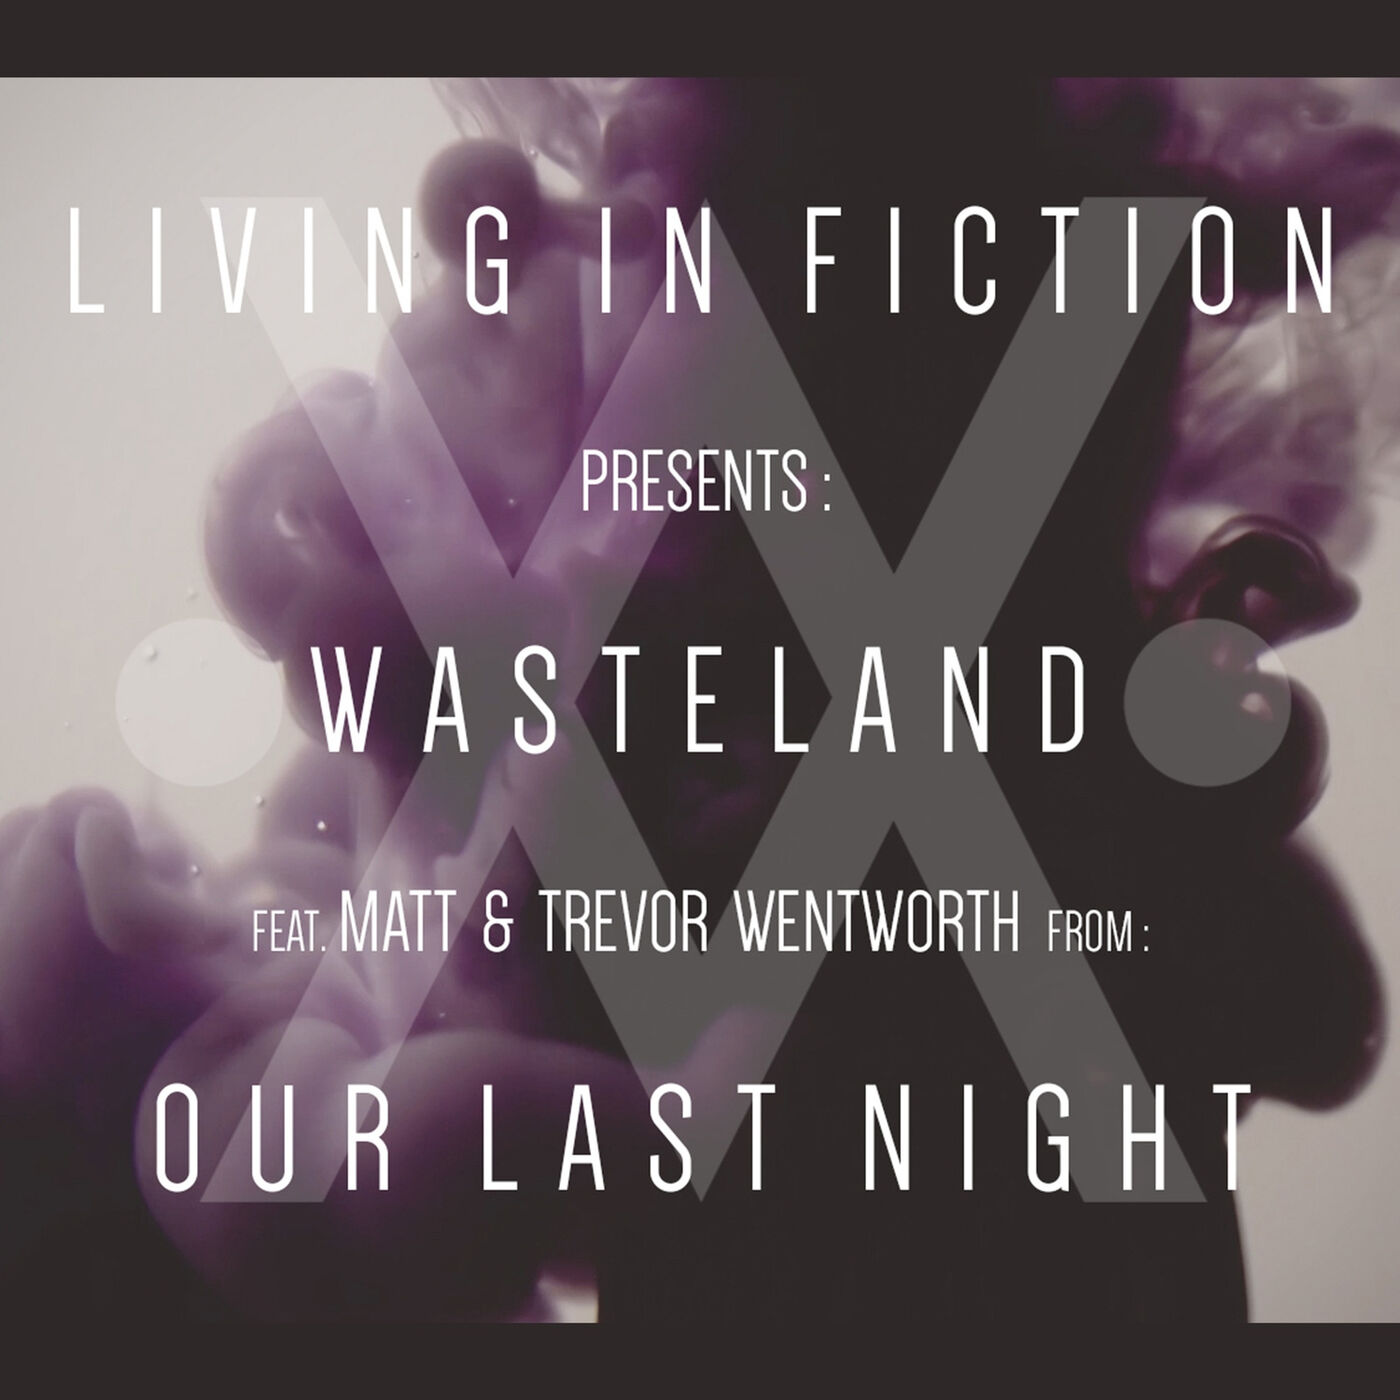 Living in Fiction - Wasteland [single] (2016)